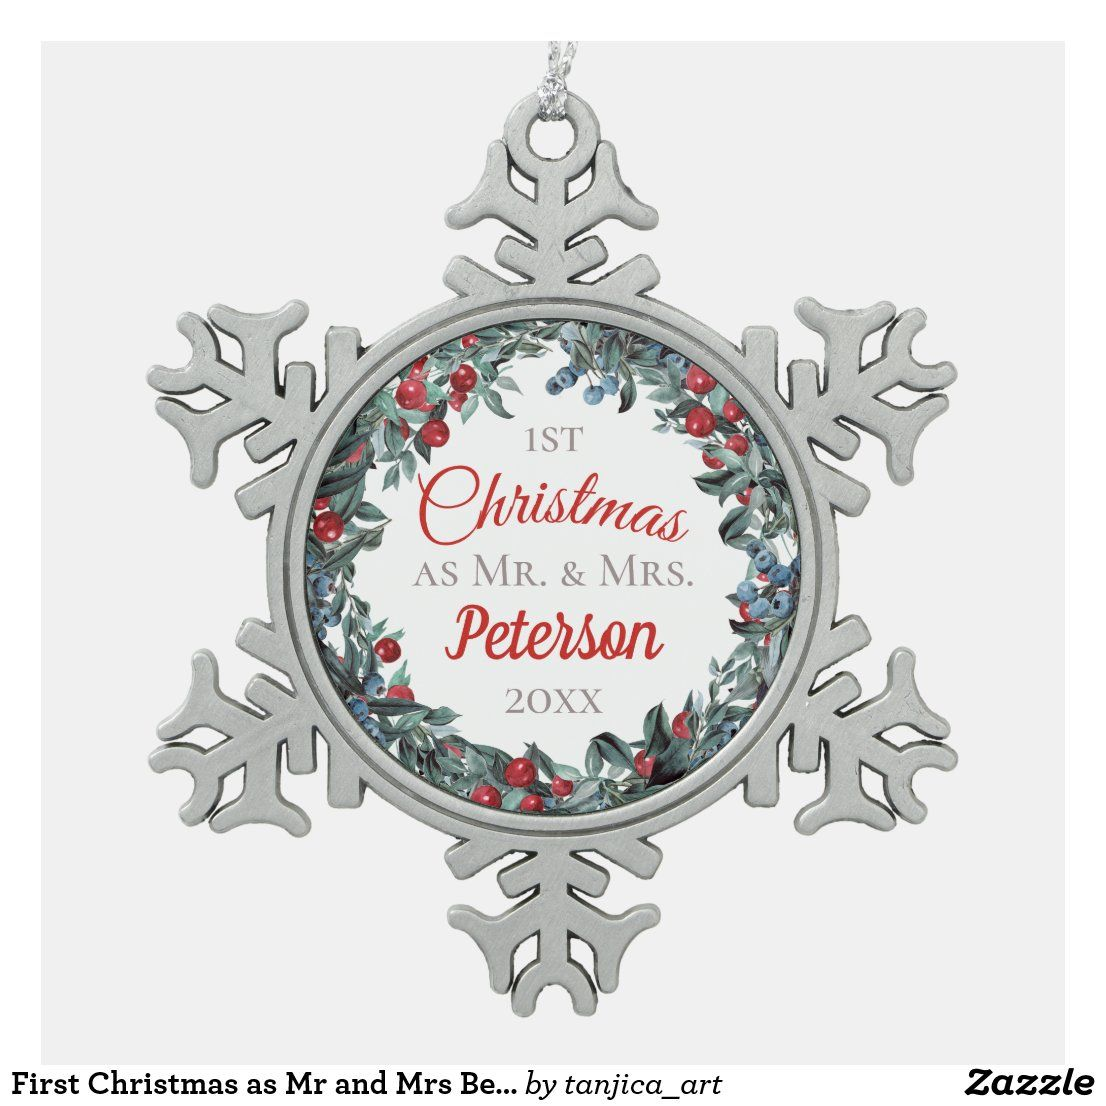 Peterson Christmas Box 2020 First Christmas as Mr and Mrs Berries Wreath Snowflake Pewter